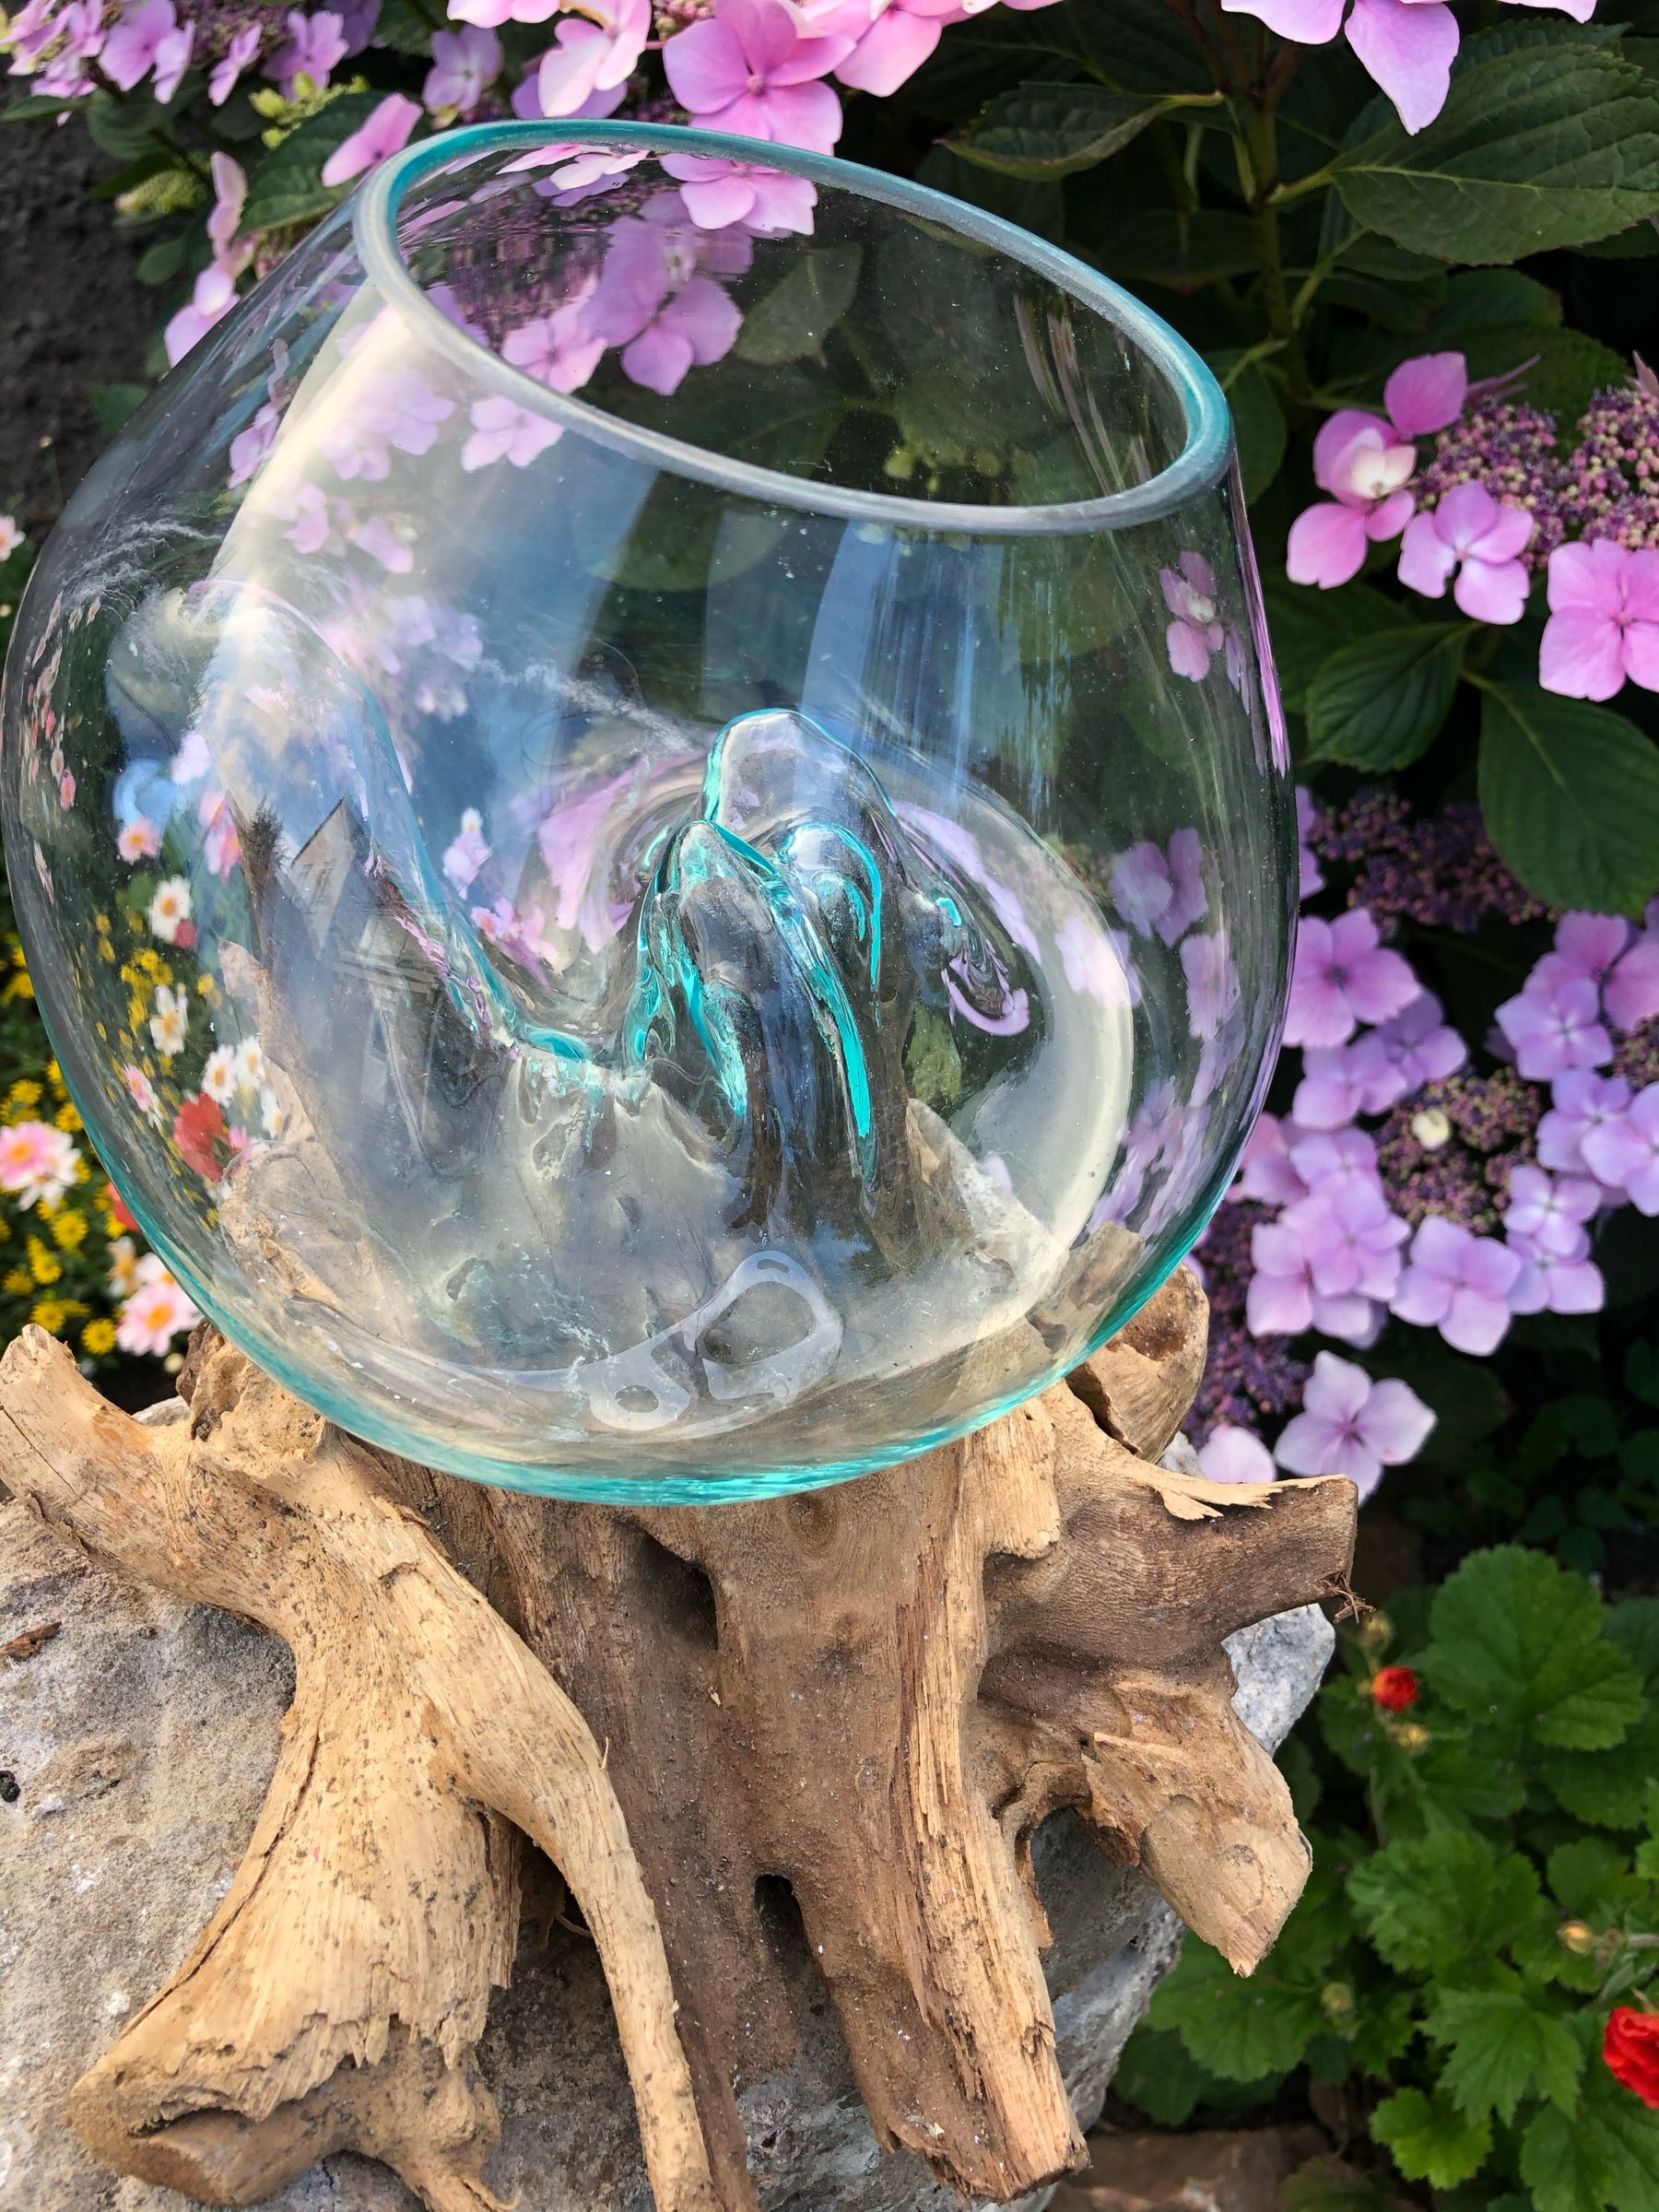 Glass bowl on root